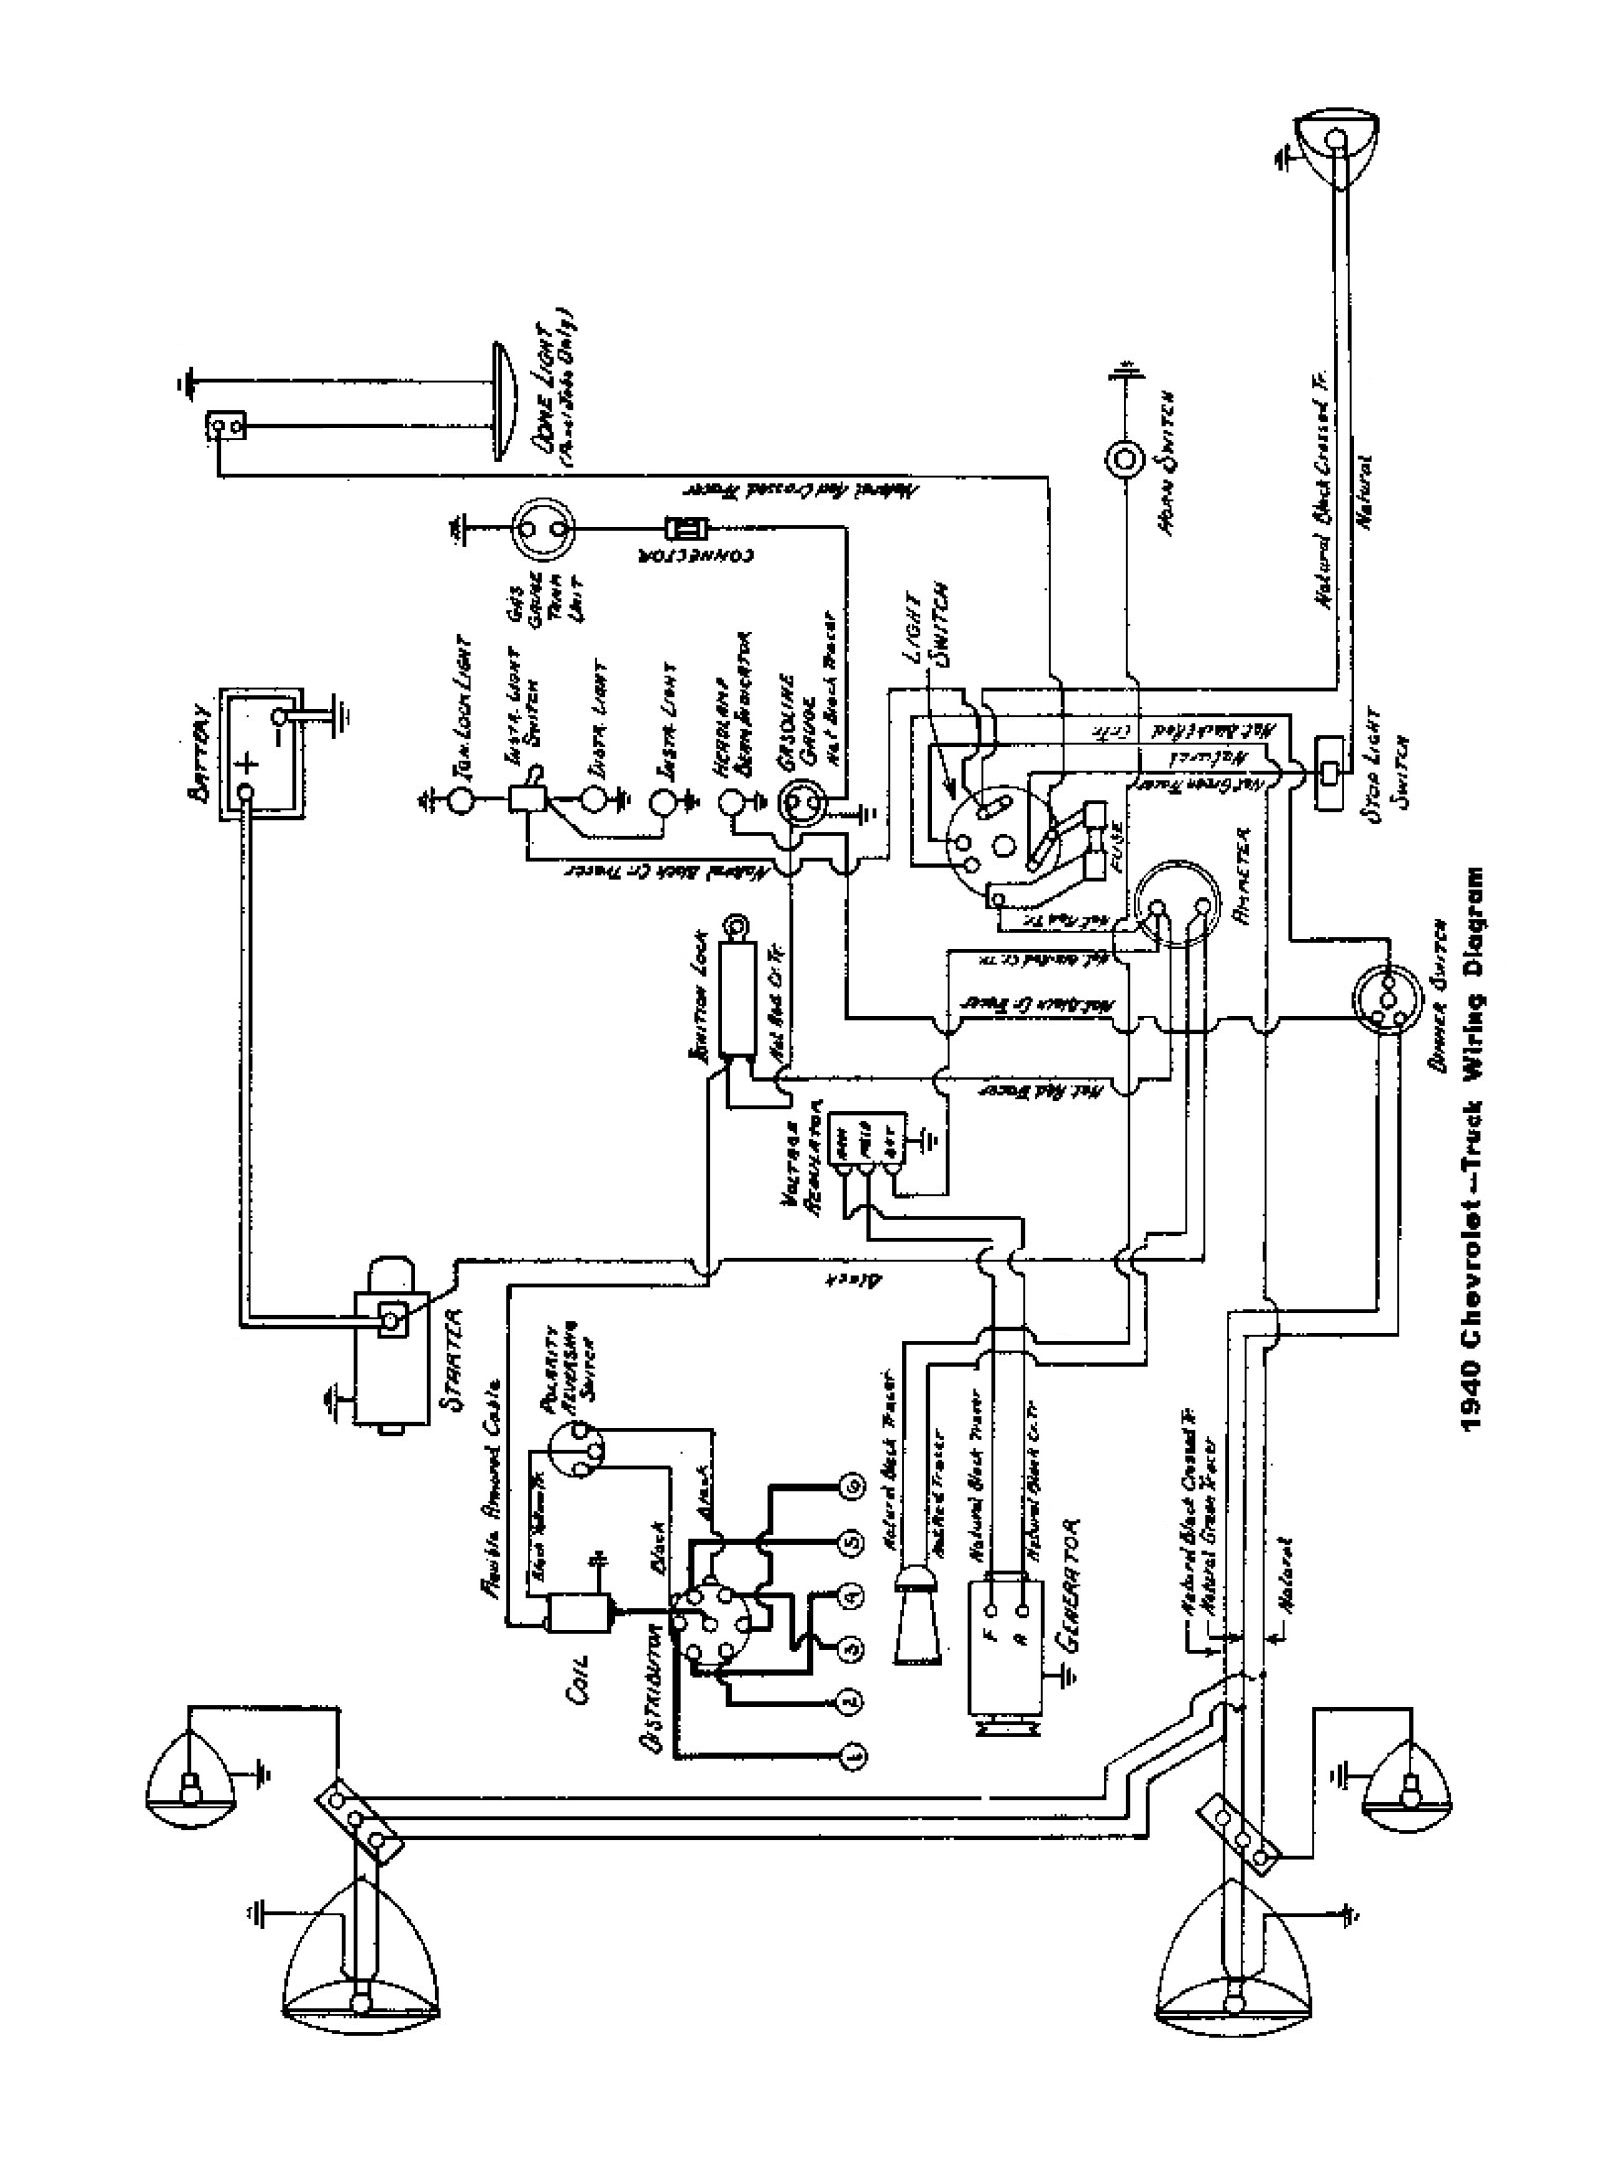 chevy truck wiring diagram download best of wiring diagram datasheet u2022 rh geetek co wiring diagram chevy silverado 2004 wiring diagram chevy silverado 2006